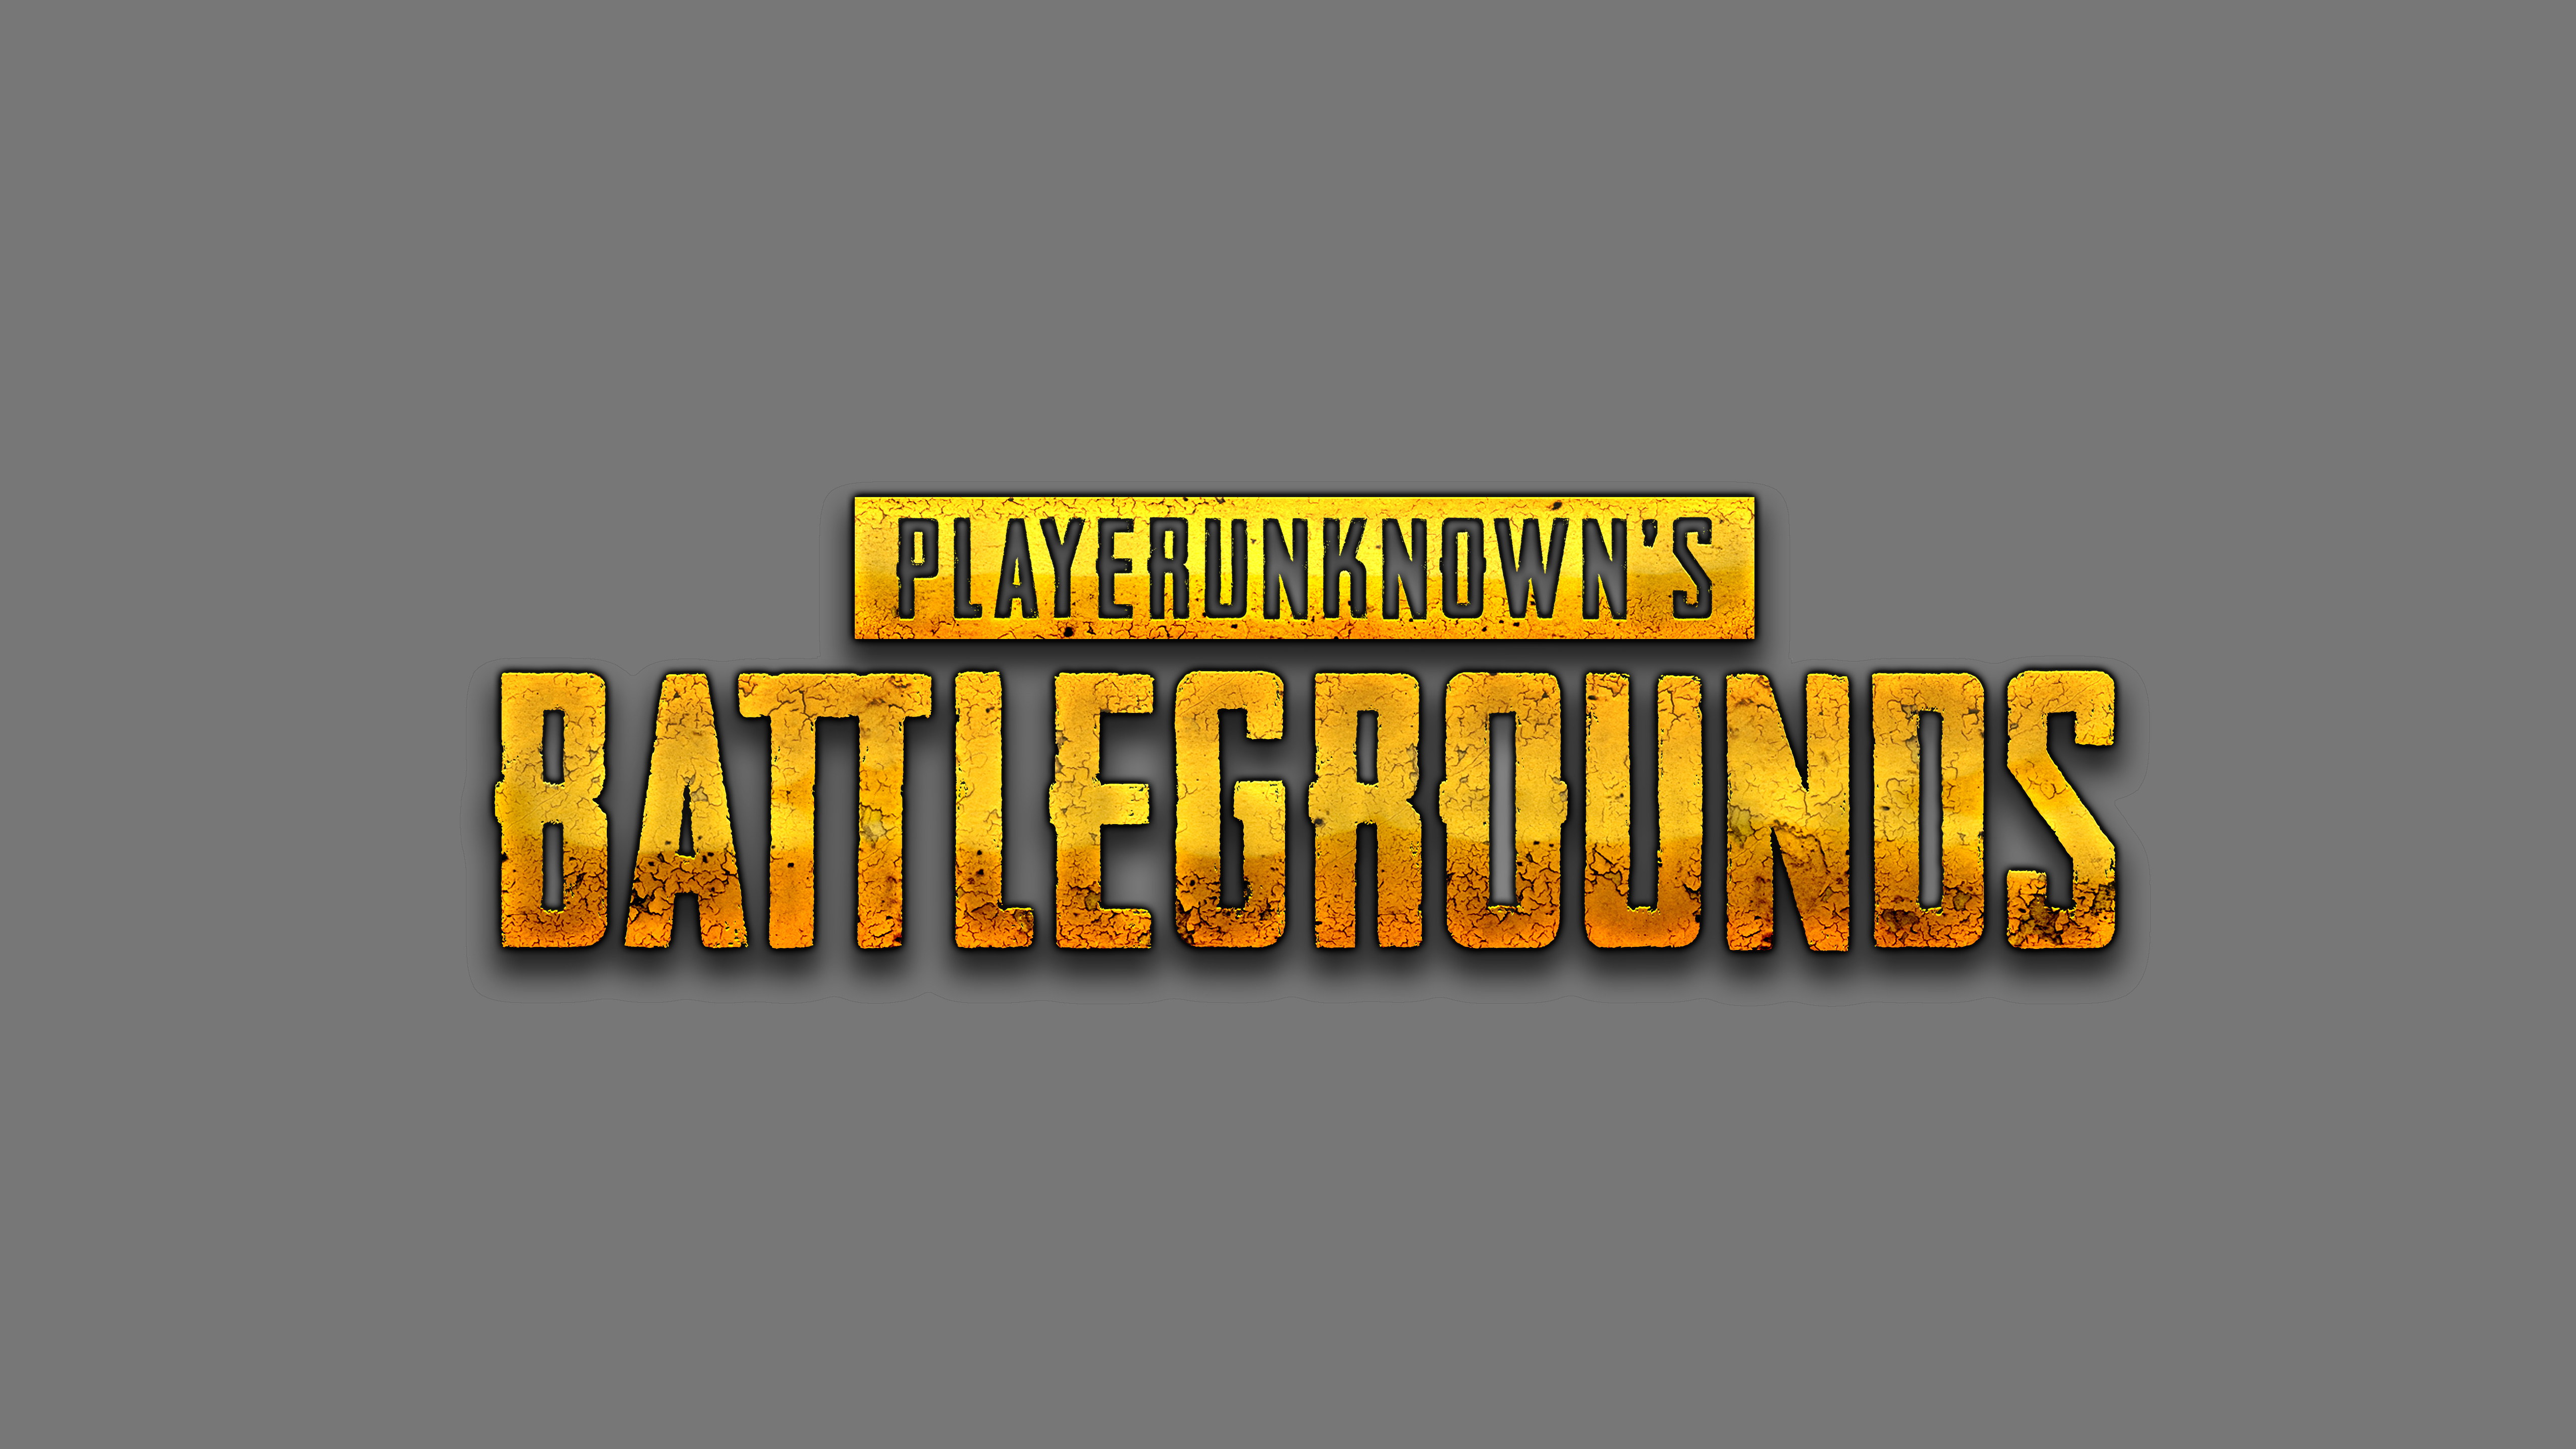 Playerunknowns Battlegrounds Logo 5k Hd 798898 Png Images Pngio